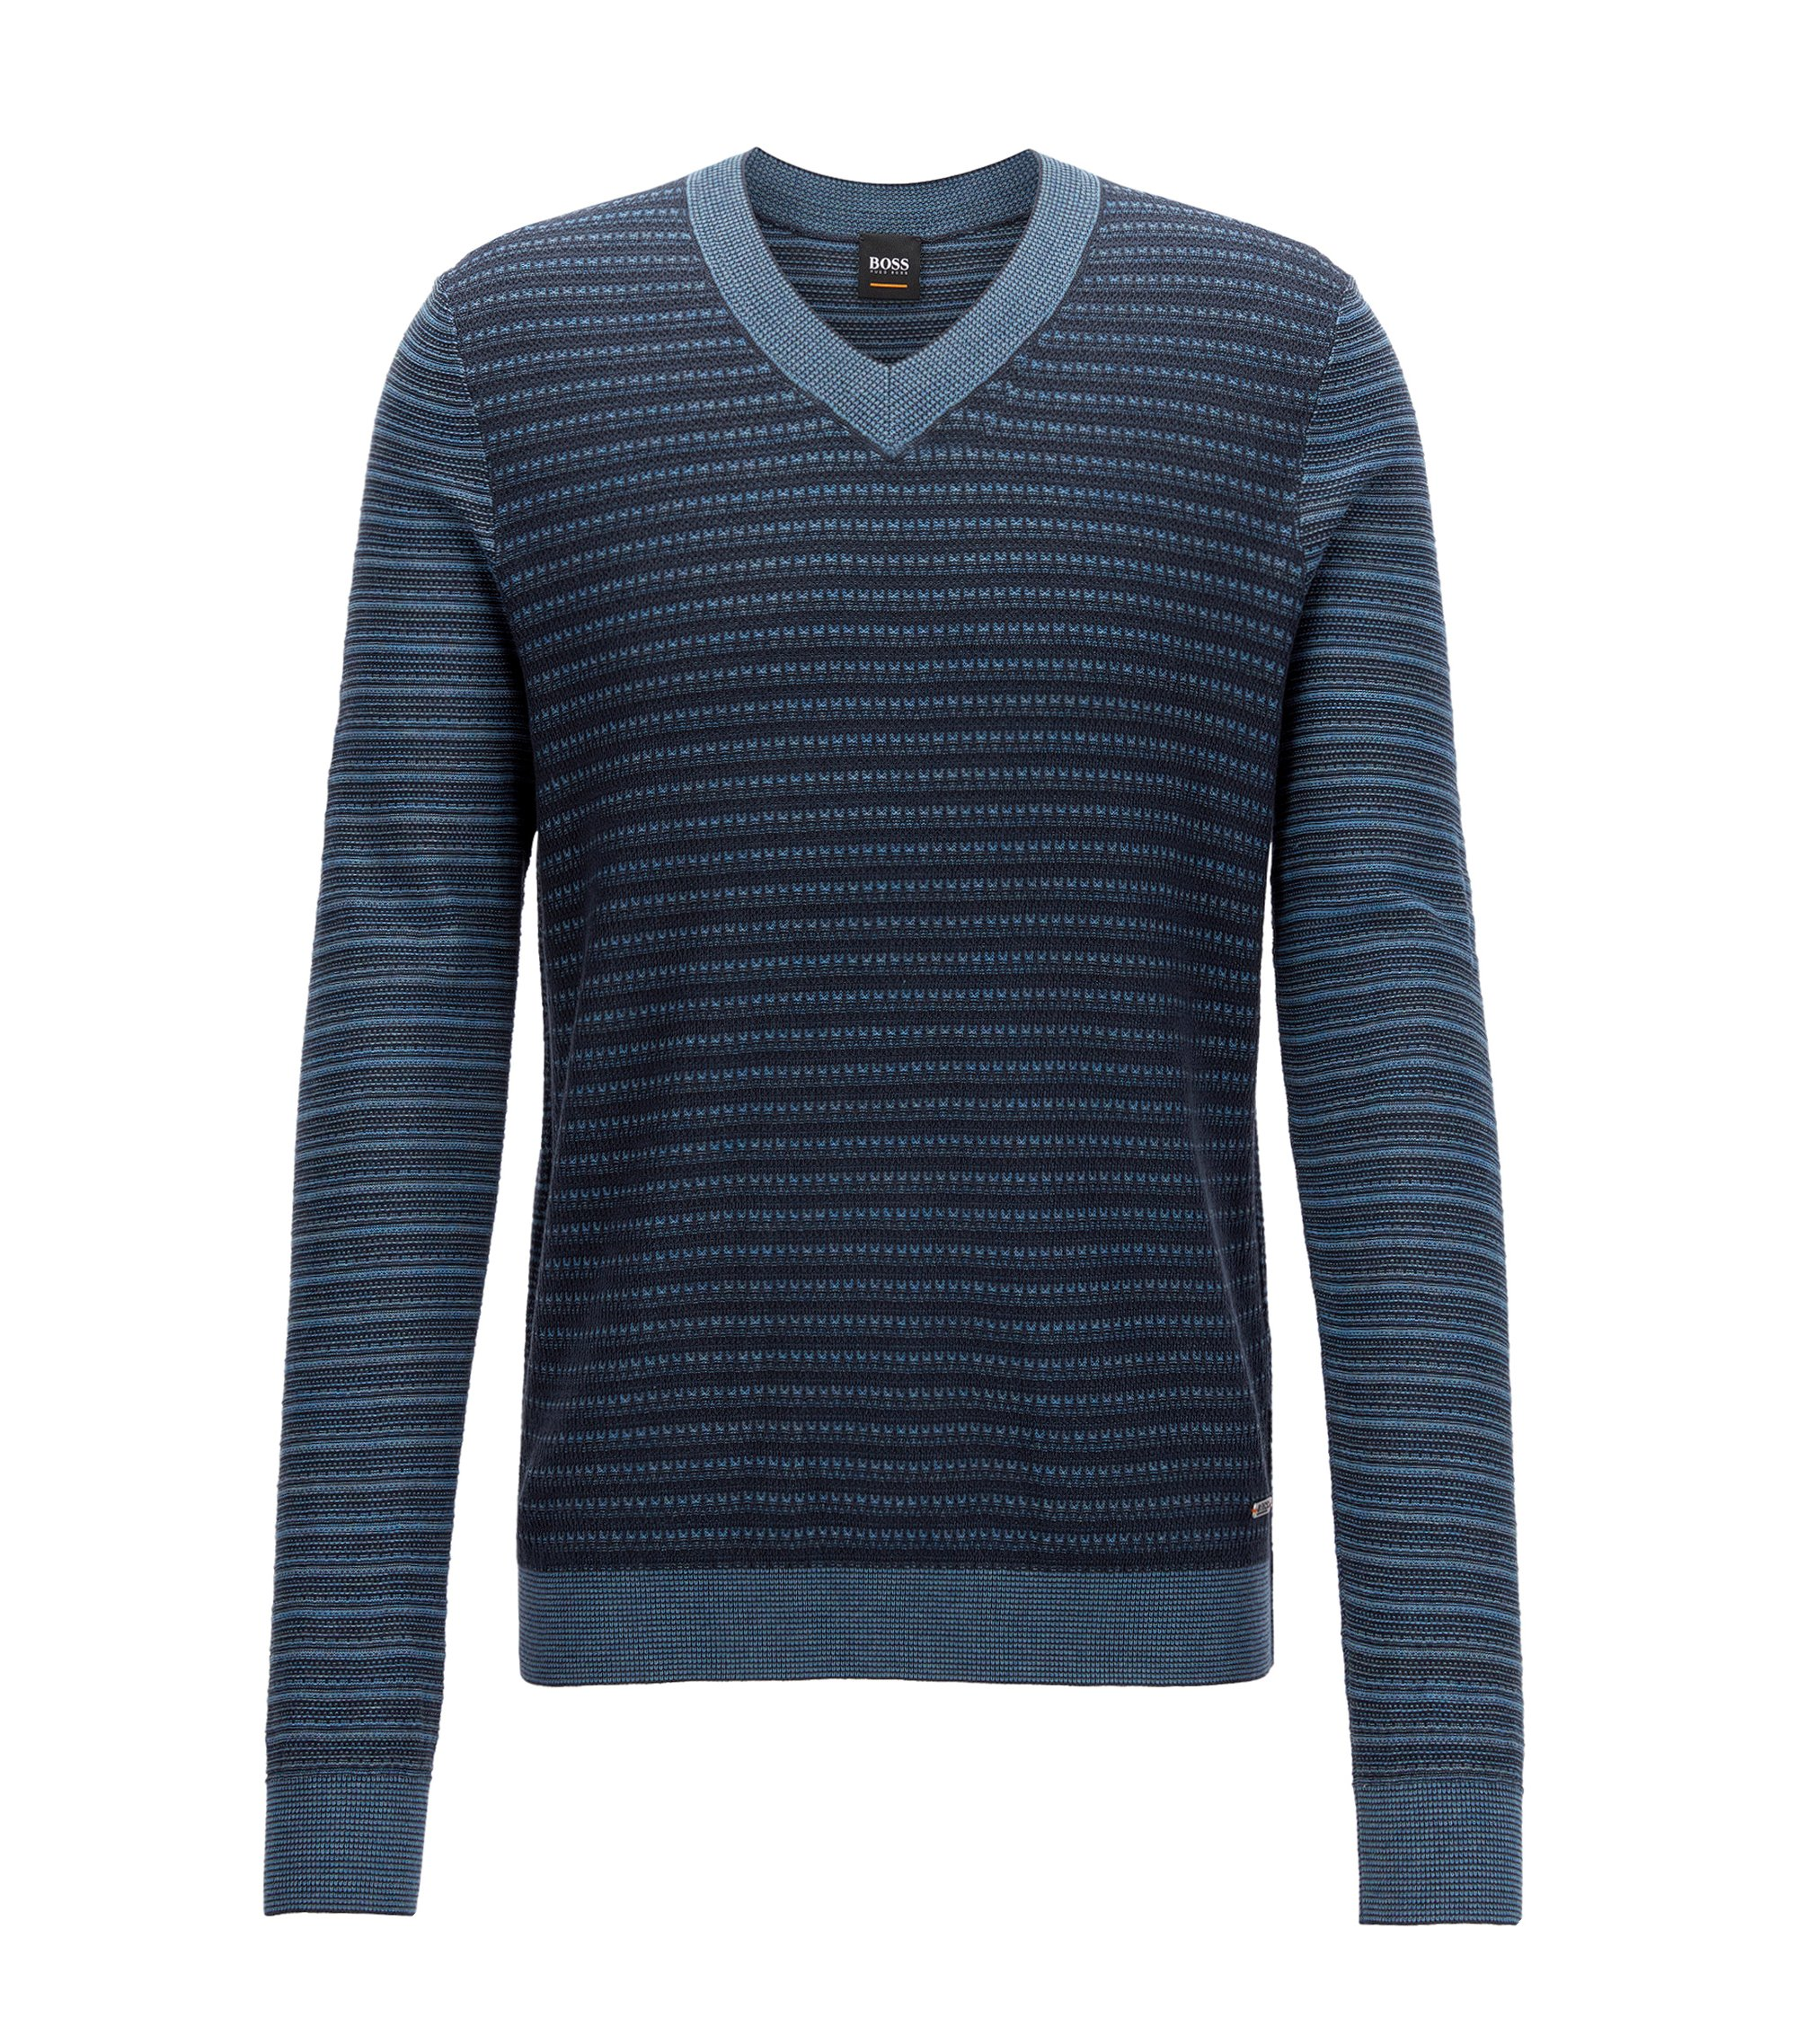 Cotton-blend V-neck sweater in multi-tonal 3D structures, Dark Blue